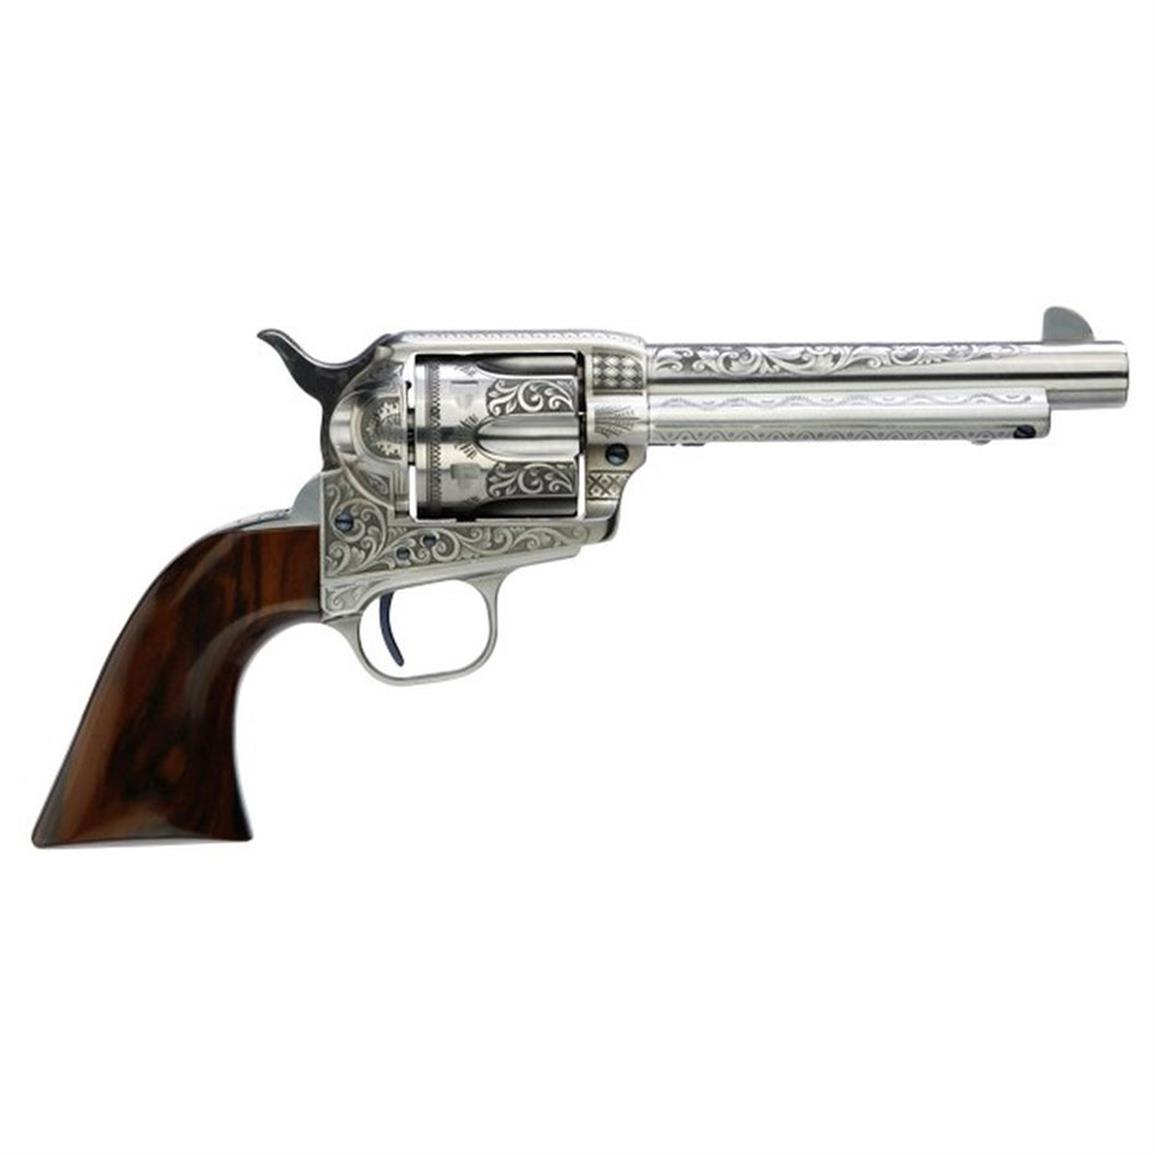 "Taylor's & Co. Uberti 1873 Cattleman Photo Engraved, Revolver, .357 Magnum, 704AWE, 5.5"" Barrel"